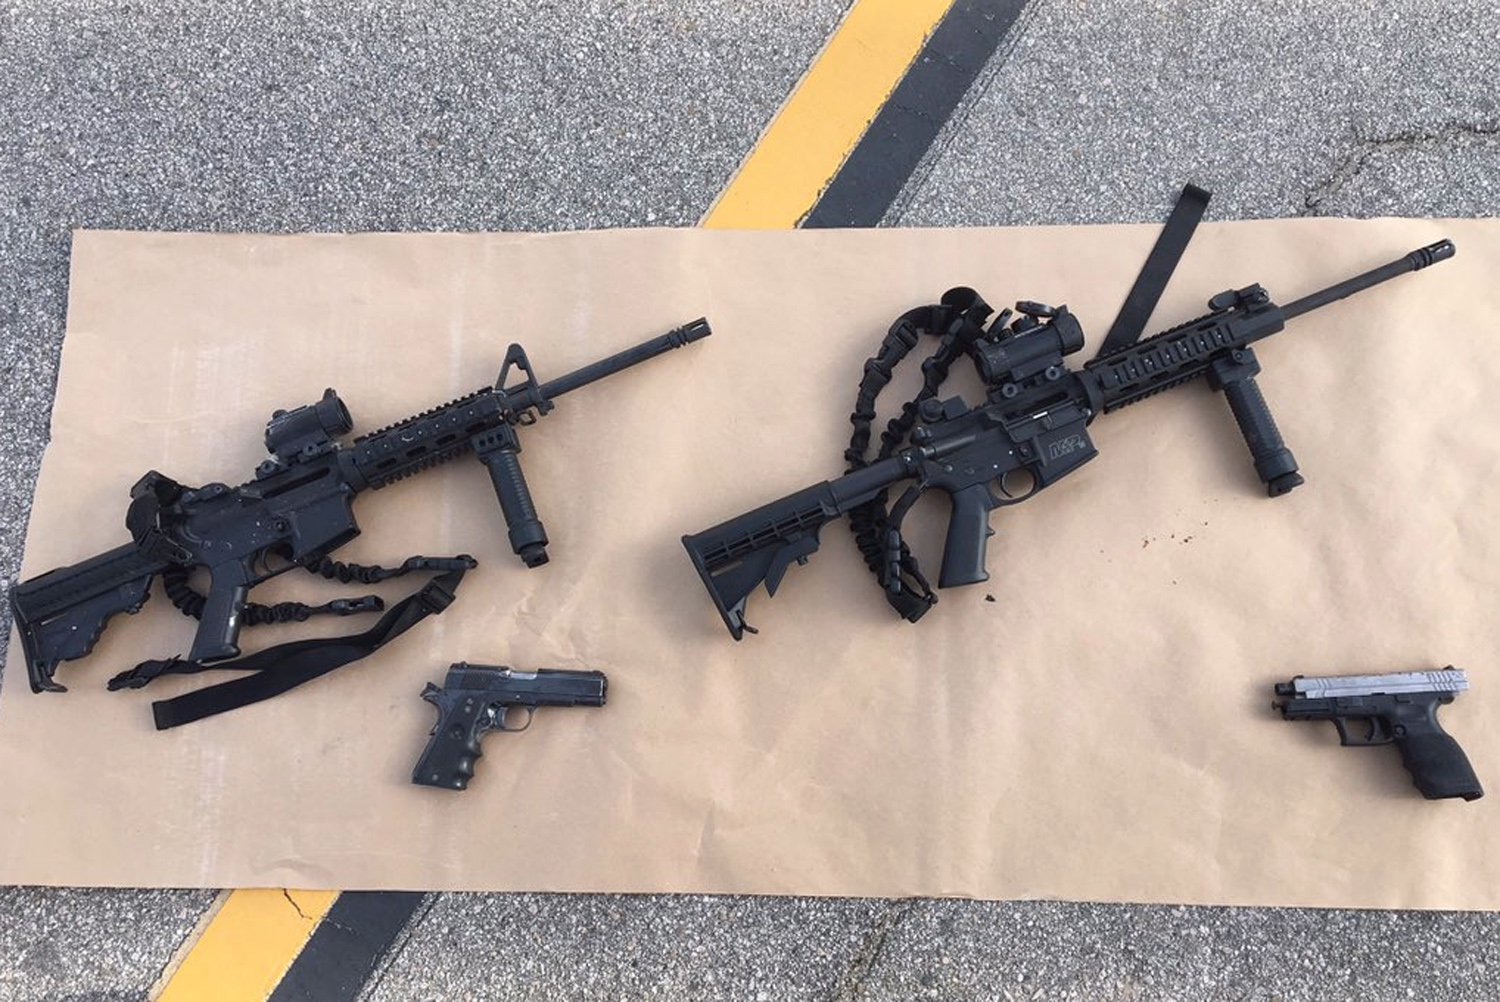 This photo provided by the San Bernardino County Sheriff's Department shows weapons carried by suspects at the scene of a shootout in San Bernardino, Calif. Multiple attackers opened fire on a banquet at a social services center for the disabled in San Bernardino on Wednesday, Dec. 2, 2015, killing multiple people and sending police on a manhunt for suspects. (San Bernardino County Sheriff's Department via AP)